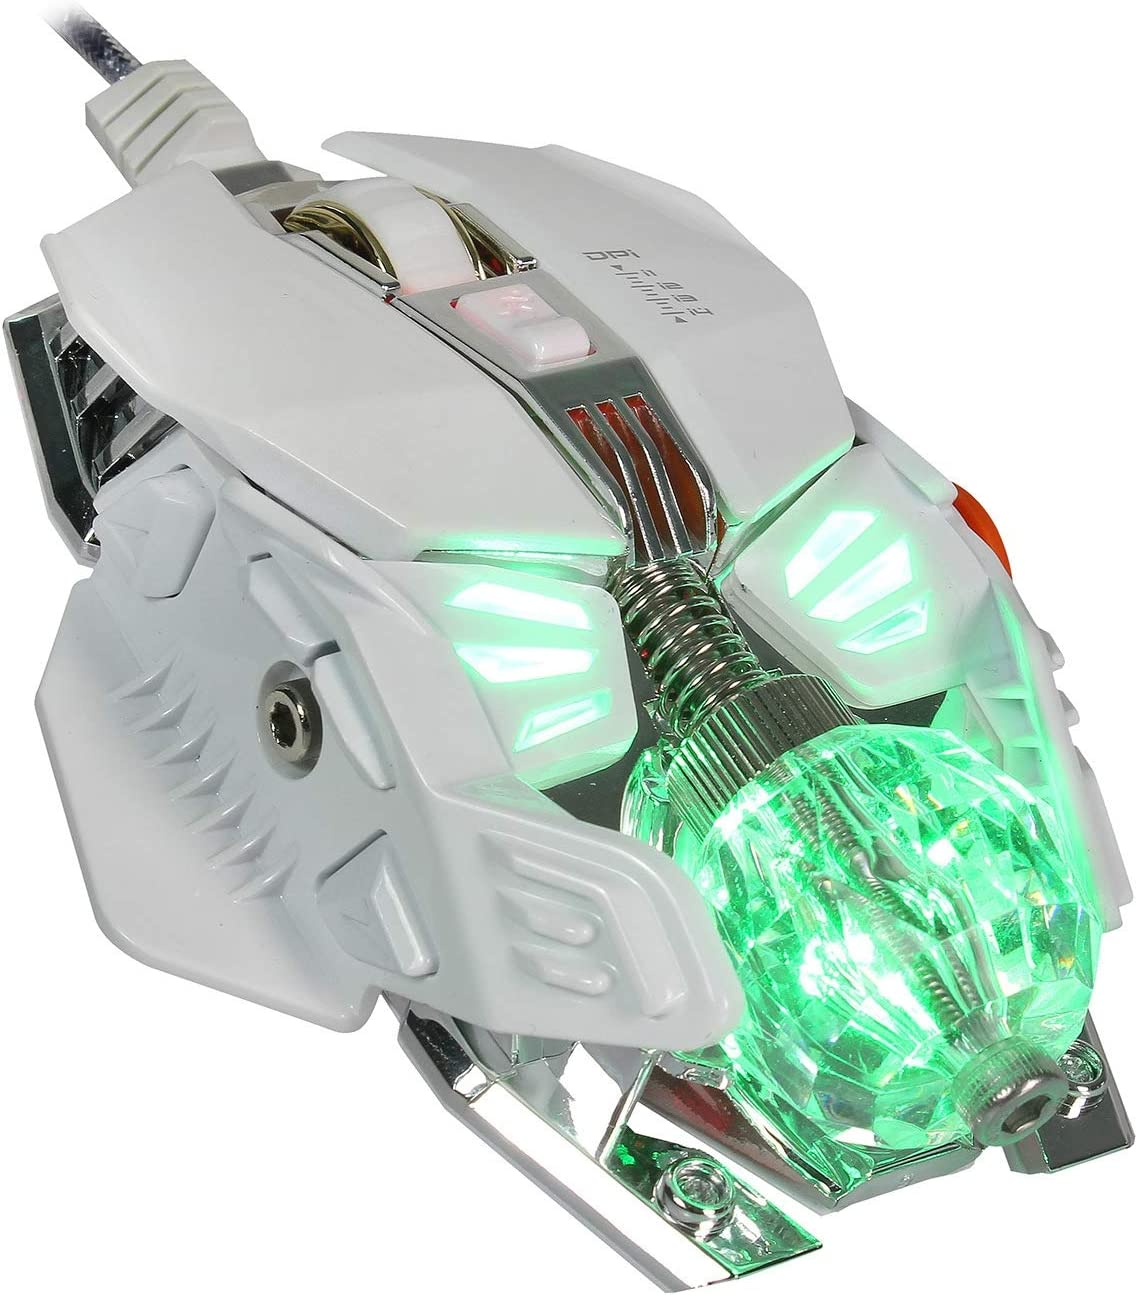 E-Sports Mechanical Mouse 4000DPI 9-Key Macro Programming Mouse Computer Peripheral Mouse Suitable for Office Games Luminous Gaming Mouse Black